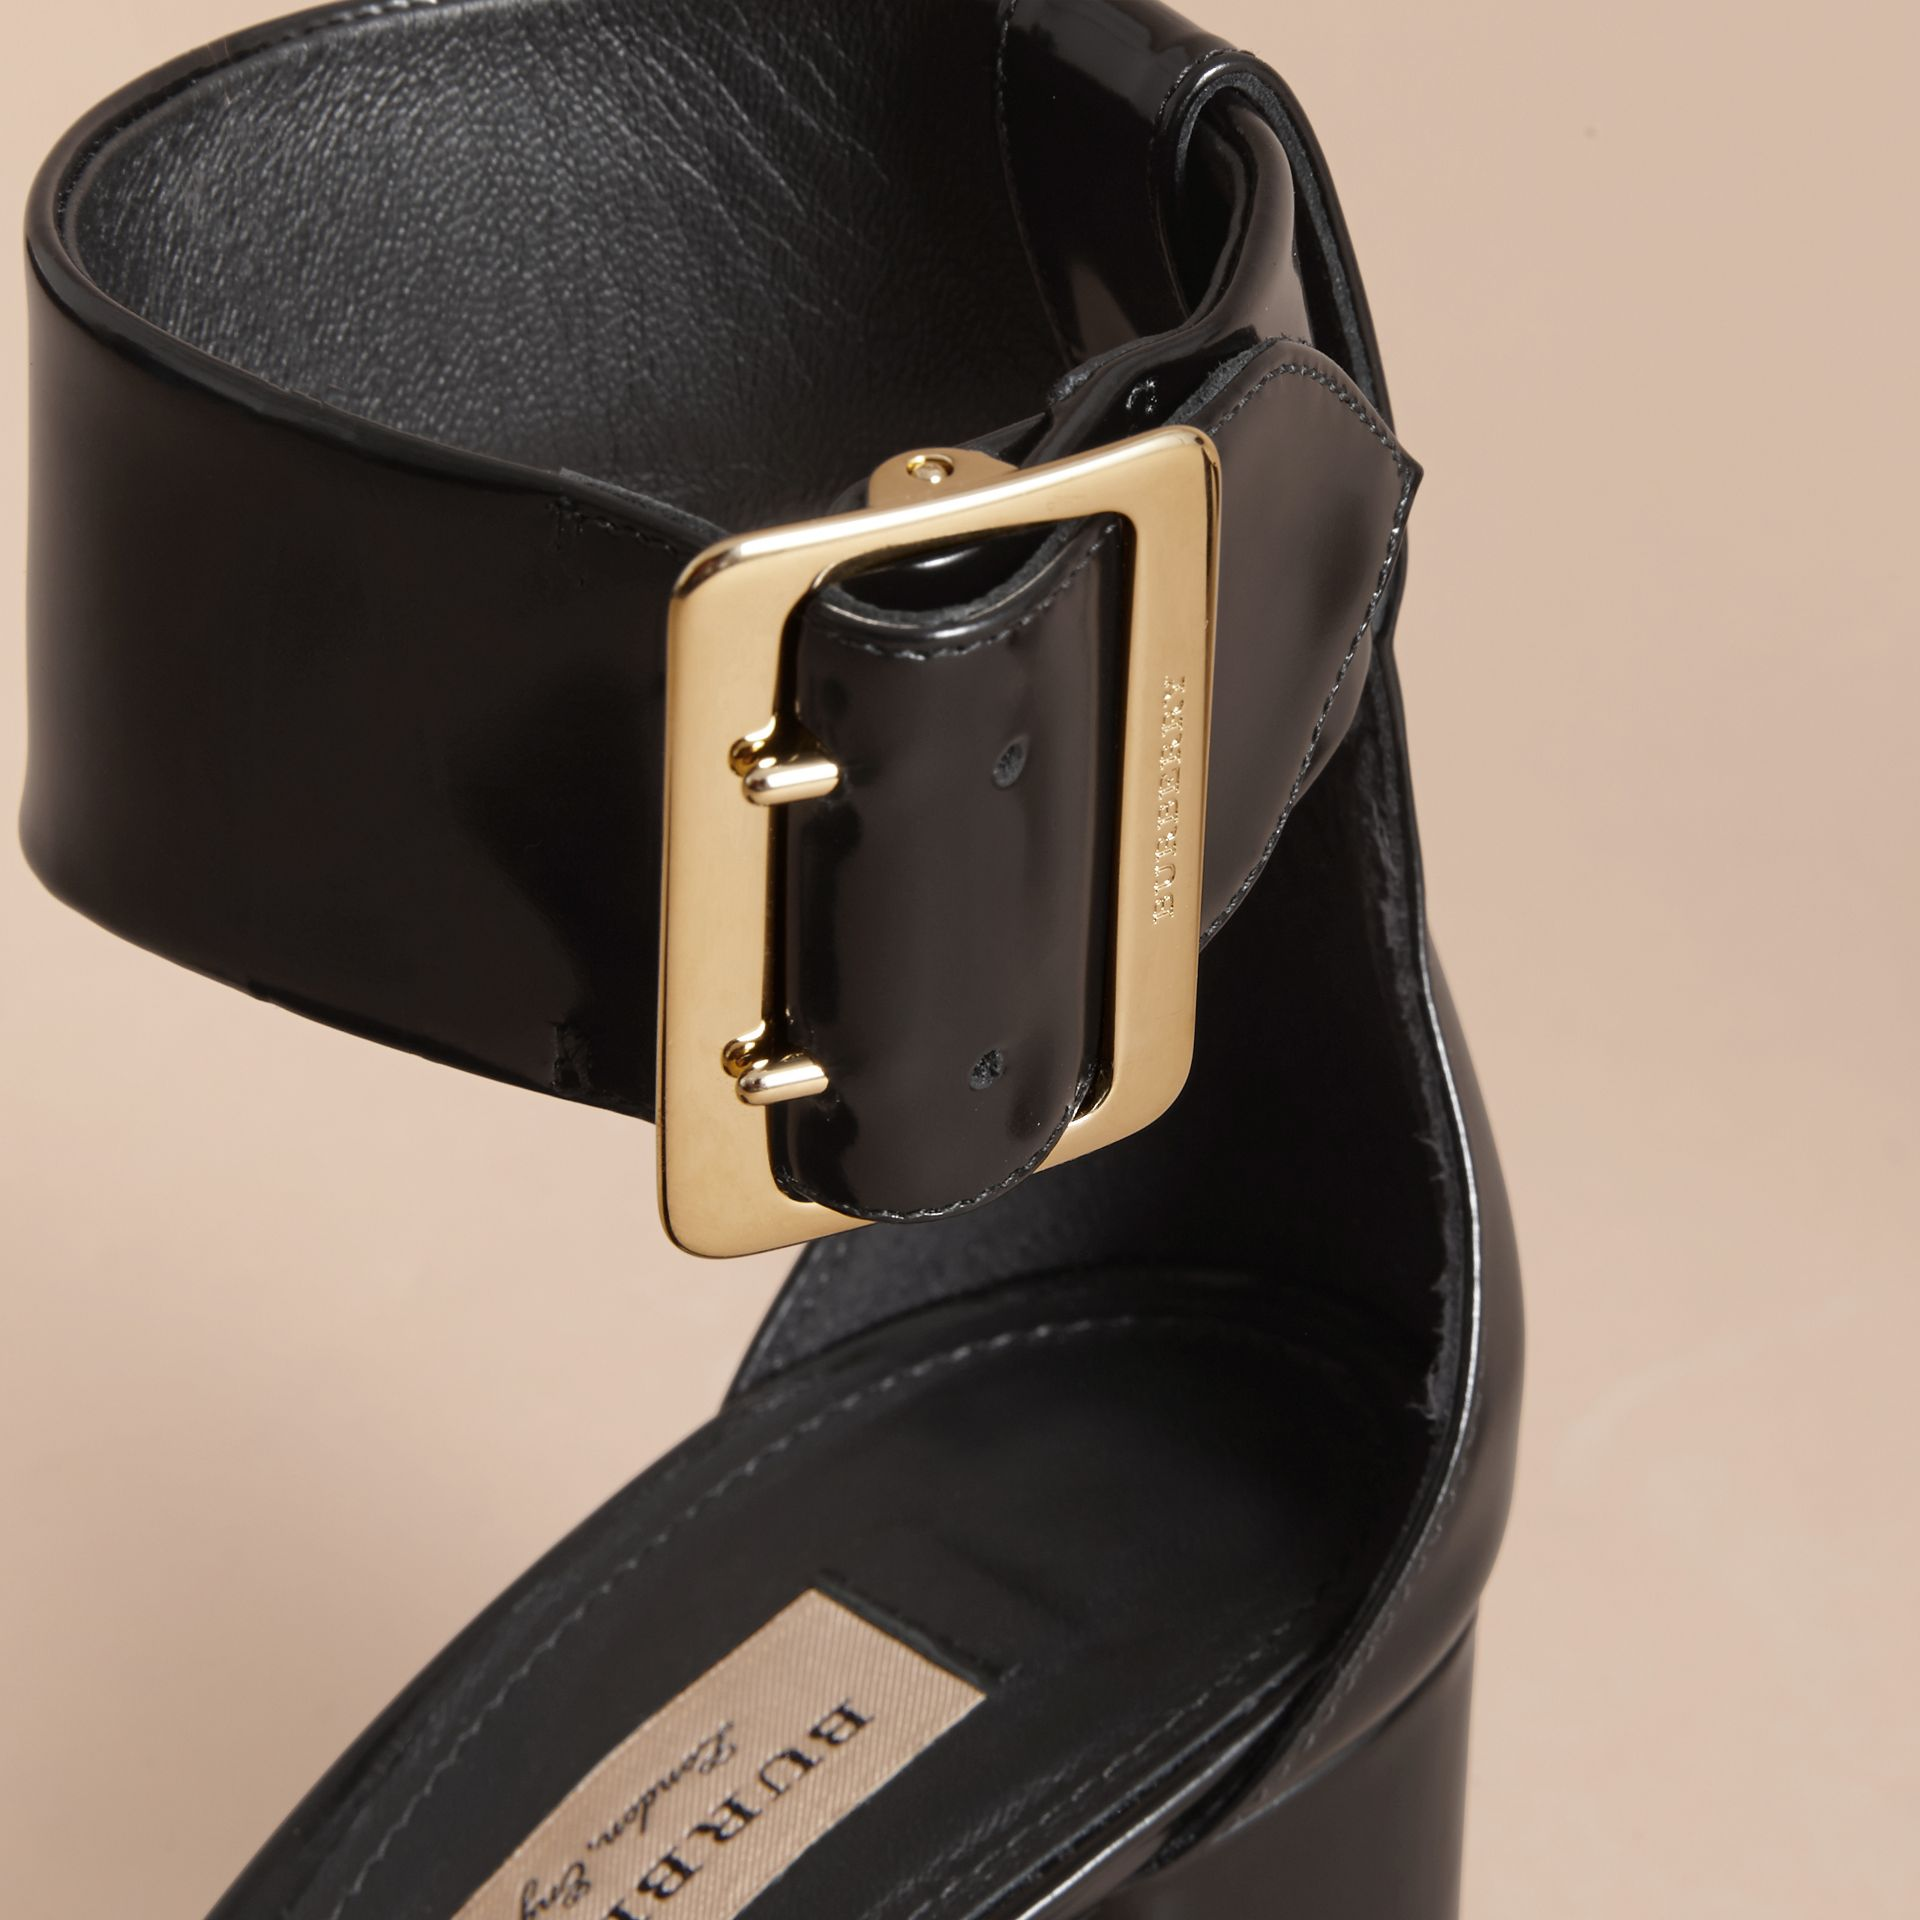 Buckle Detail Patent Leather Sandals in Black - Women | Burberry Australia - gallery image 2